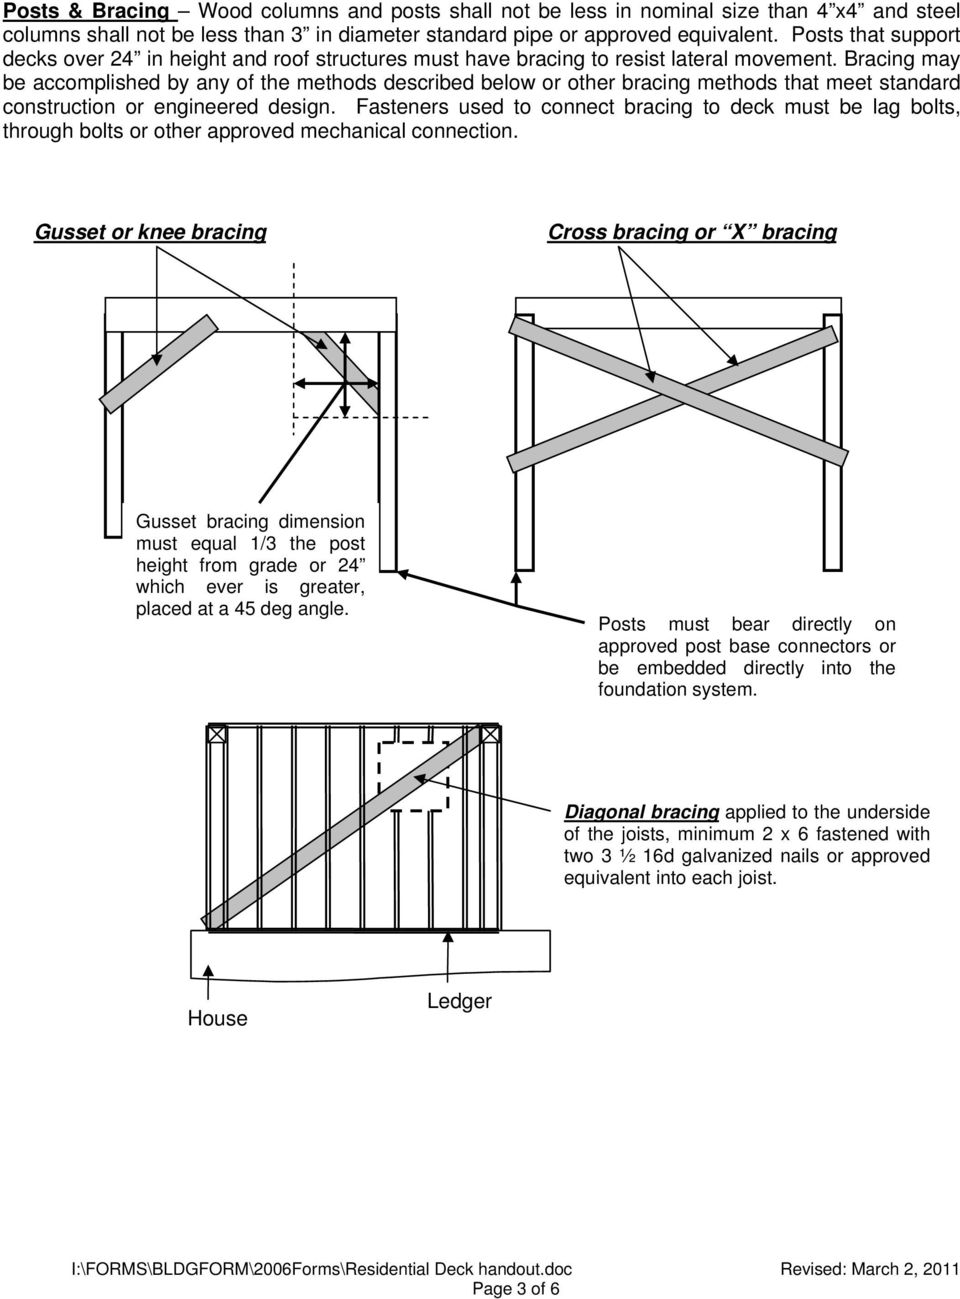 Residential Deck Safety, Construction, and Repair - PDF